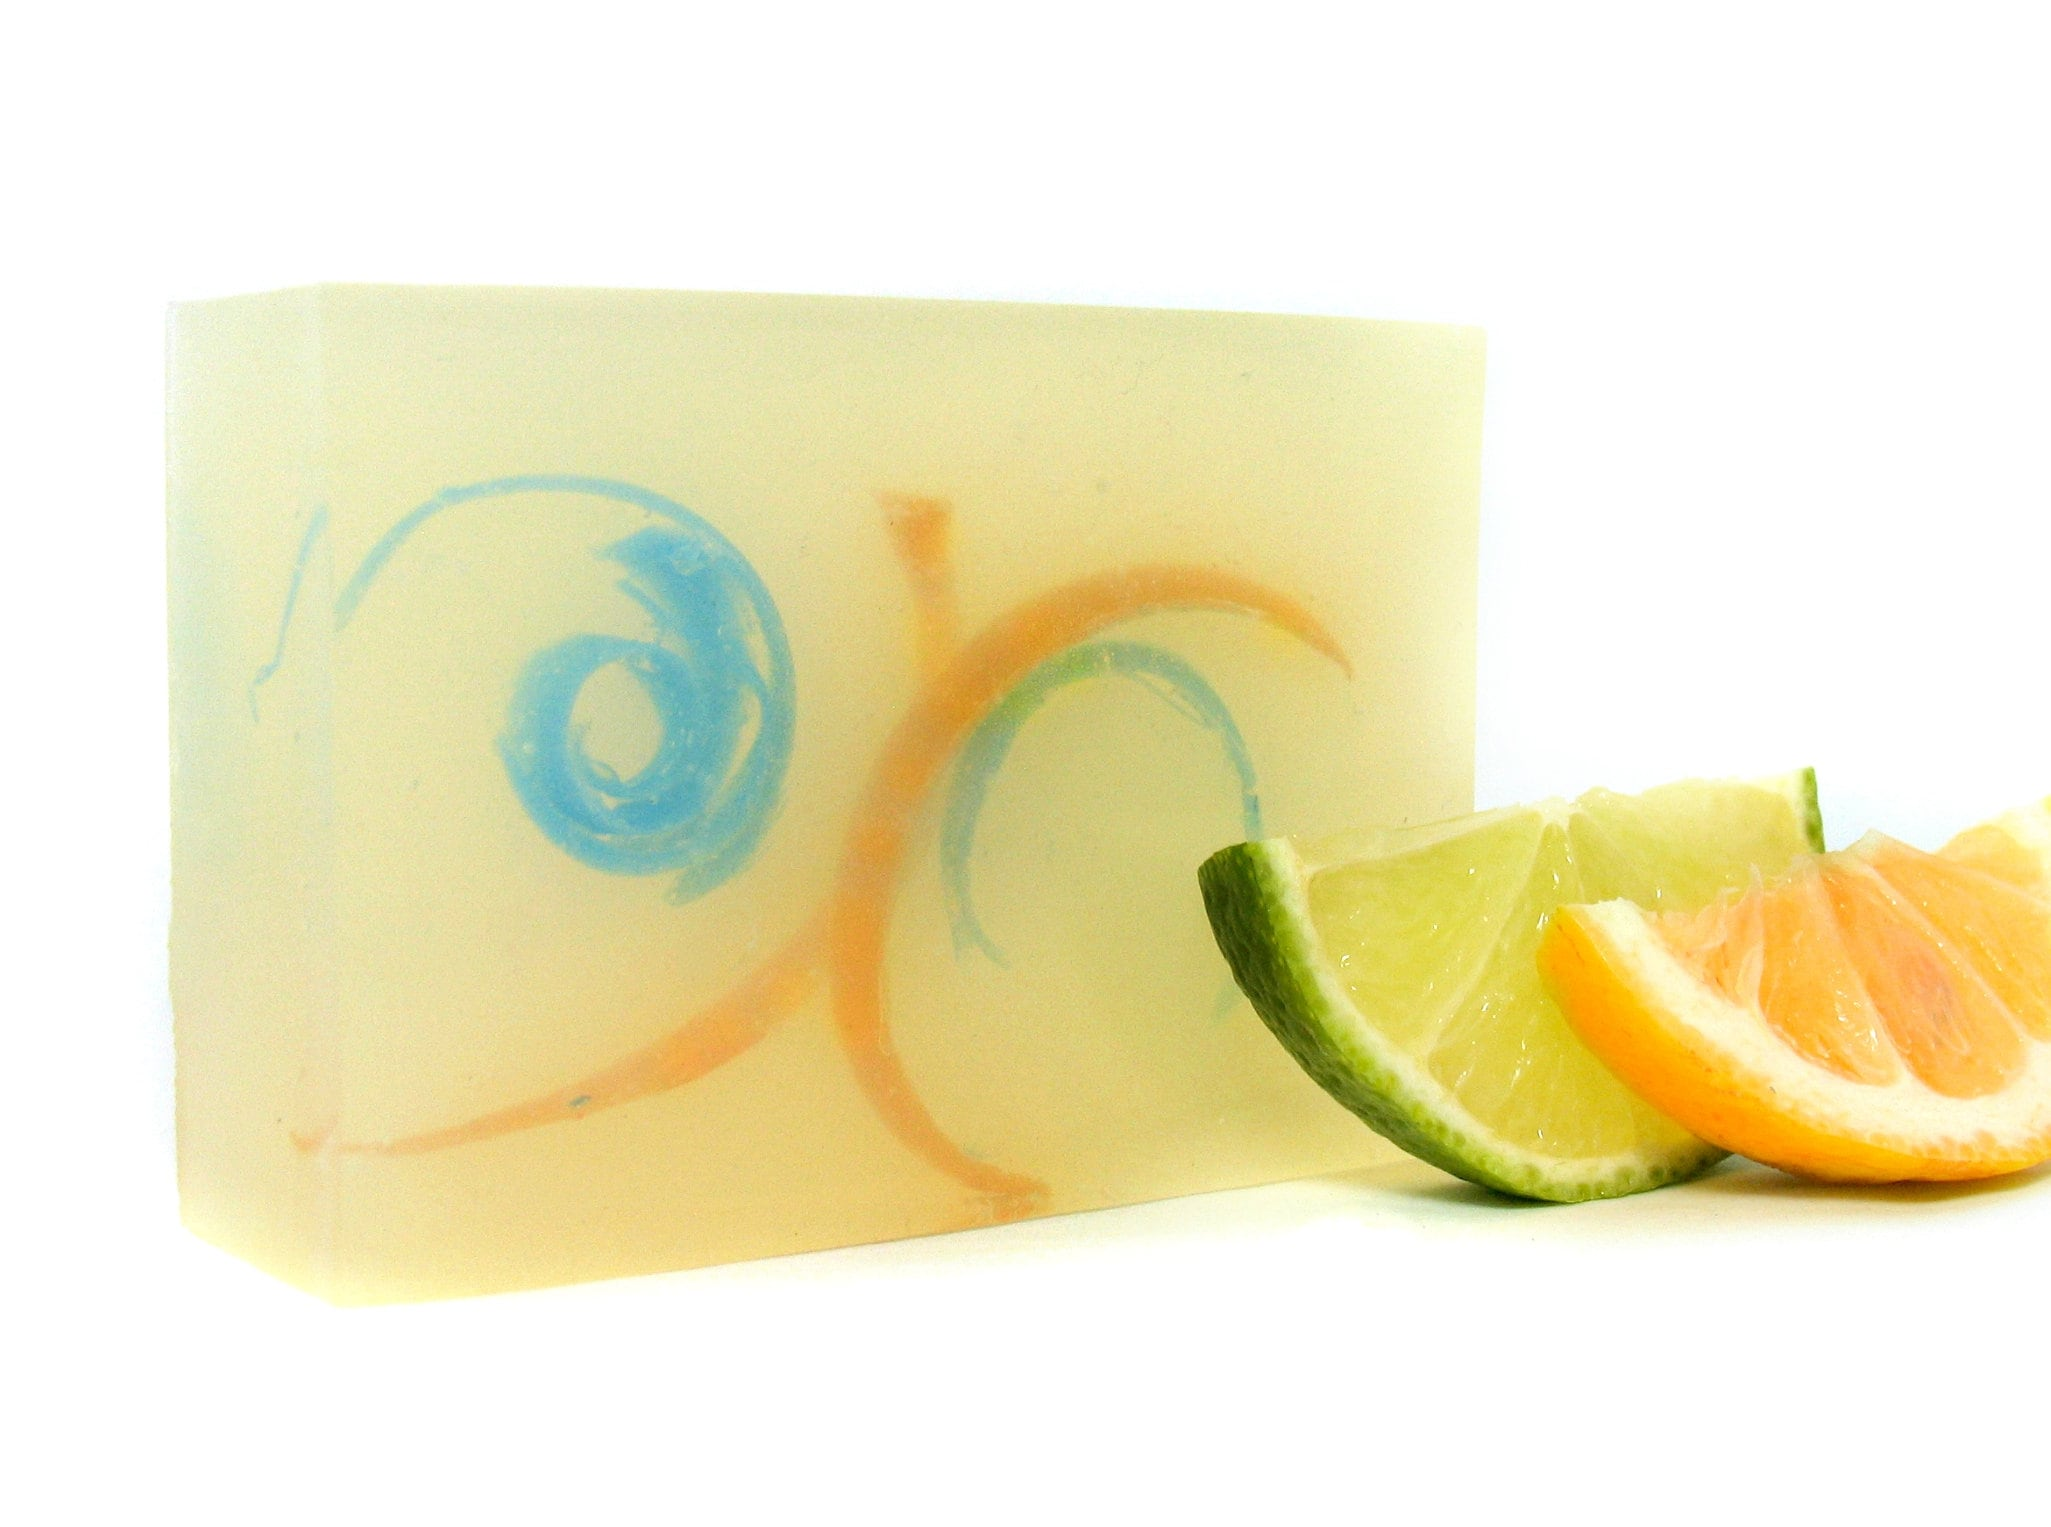 Citrus Soap - Clear Gift Soaps - Soap For Her - Coconut Soap - Dry Skin  Soap - Soap For Dry Skin - Vegan Bar Soap - Citrus Whirl